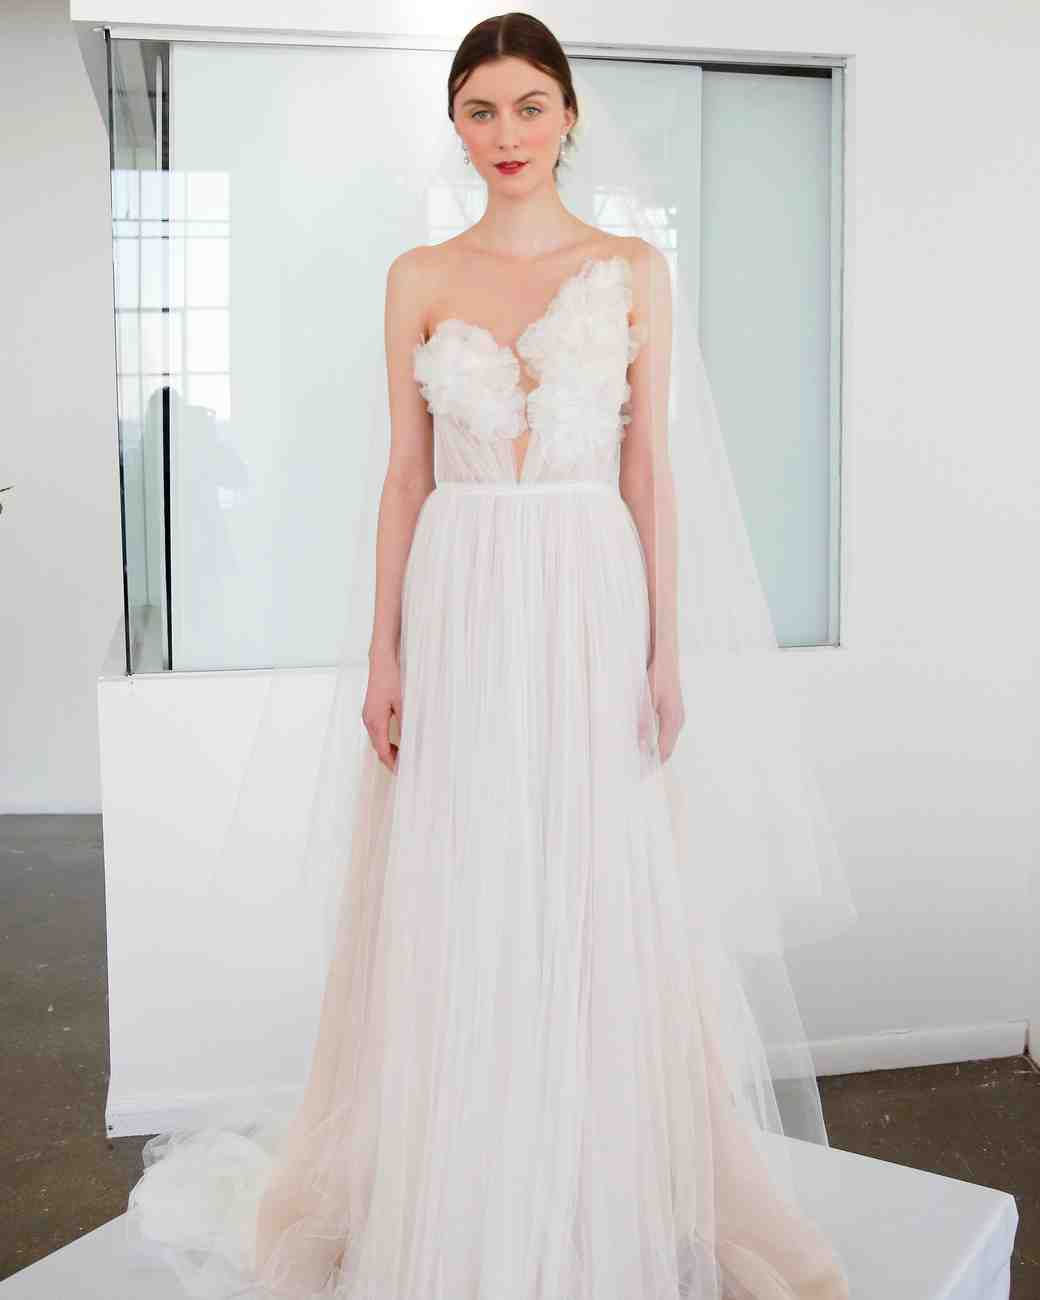 marchesa wedding dress spring marchesa wedding dresses Marchesa Spring Wedding Dress Collection Martha Stewart